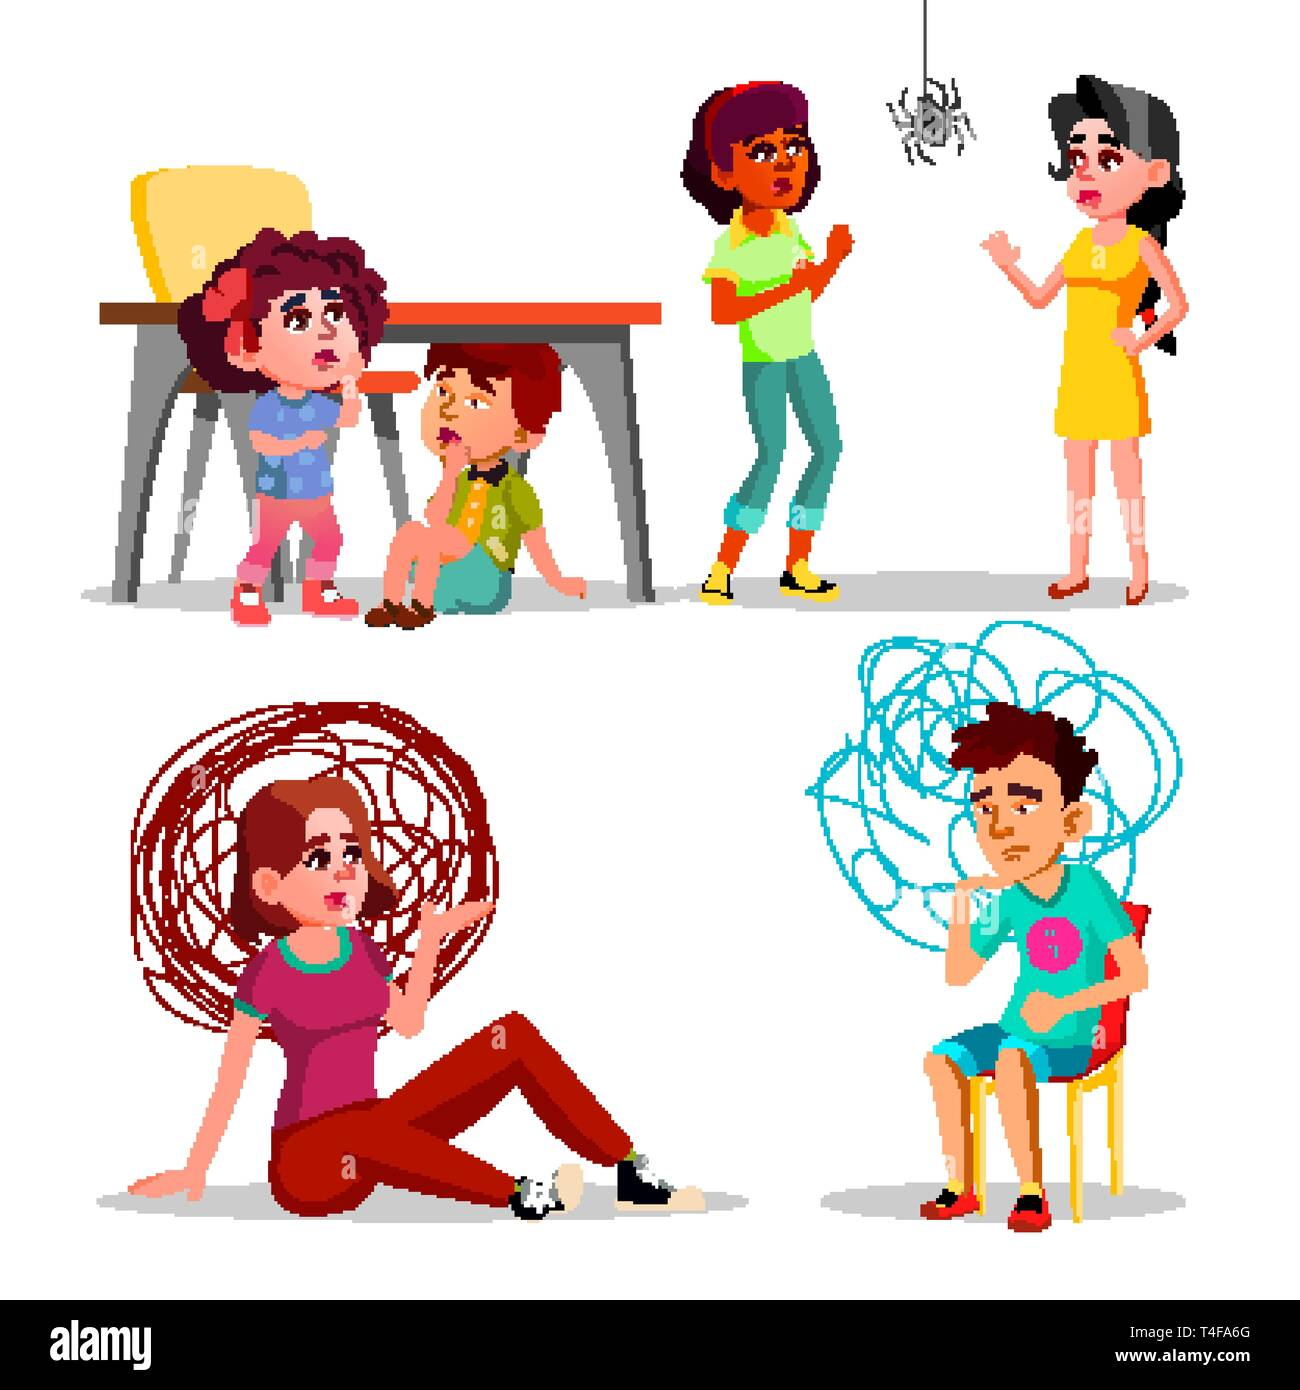 Phobia, Anxiety, Panic Attack, Depression Vector Set - Stock Vector